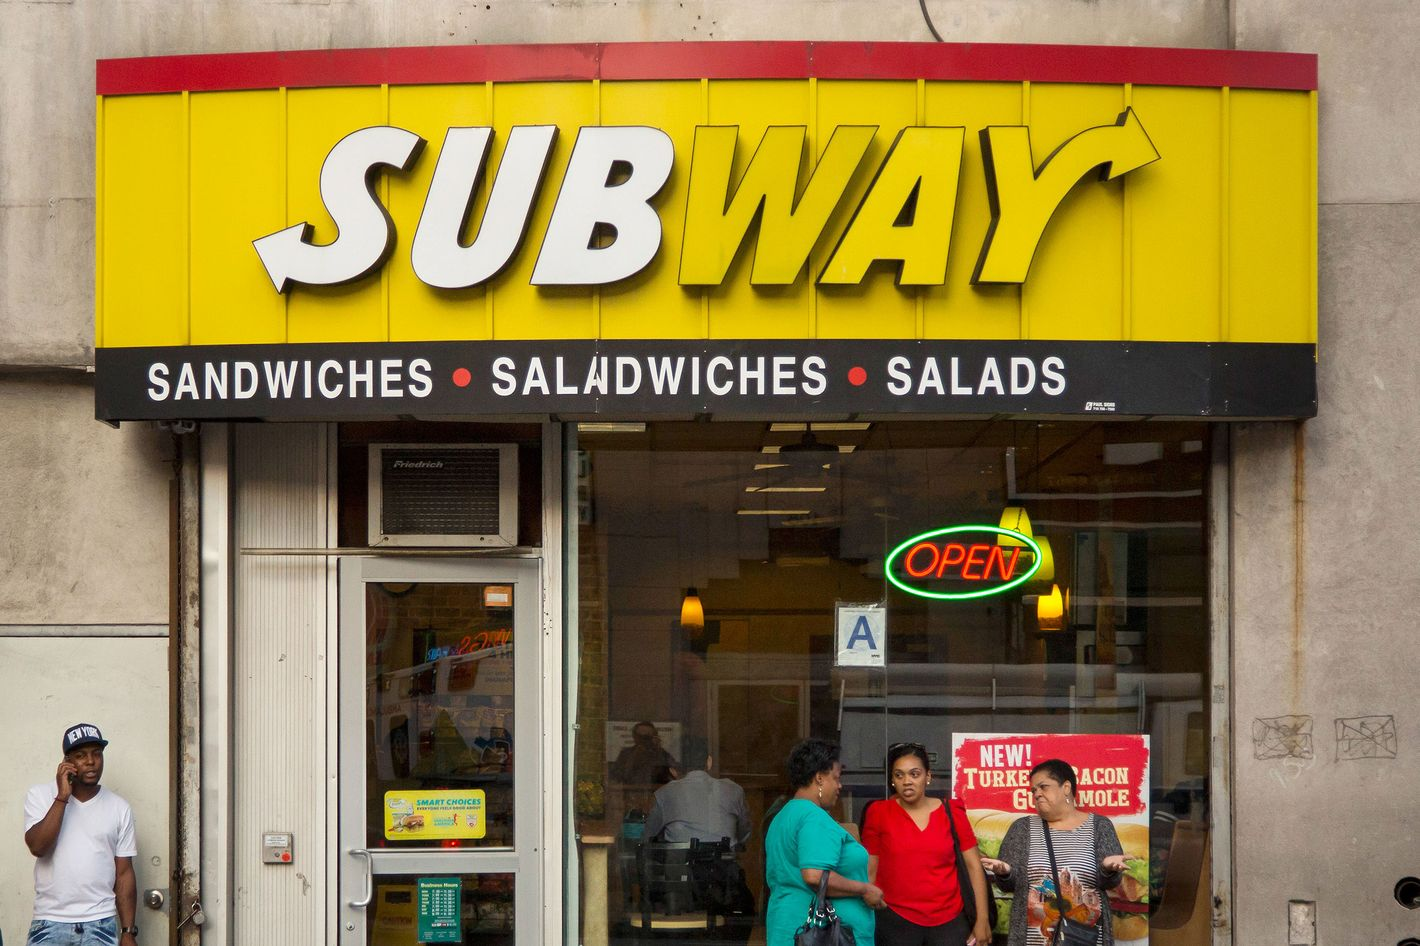 So close you can measure the distance between stores in sandwich lengths.